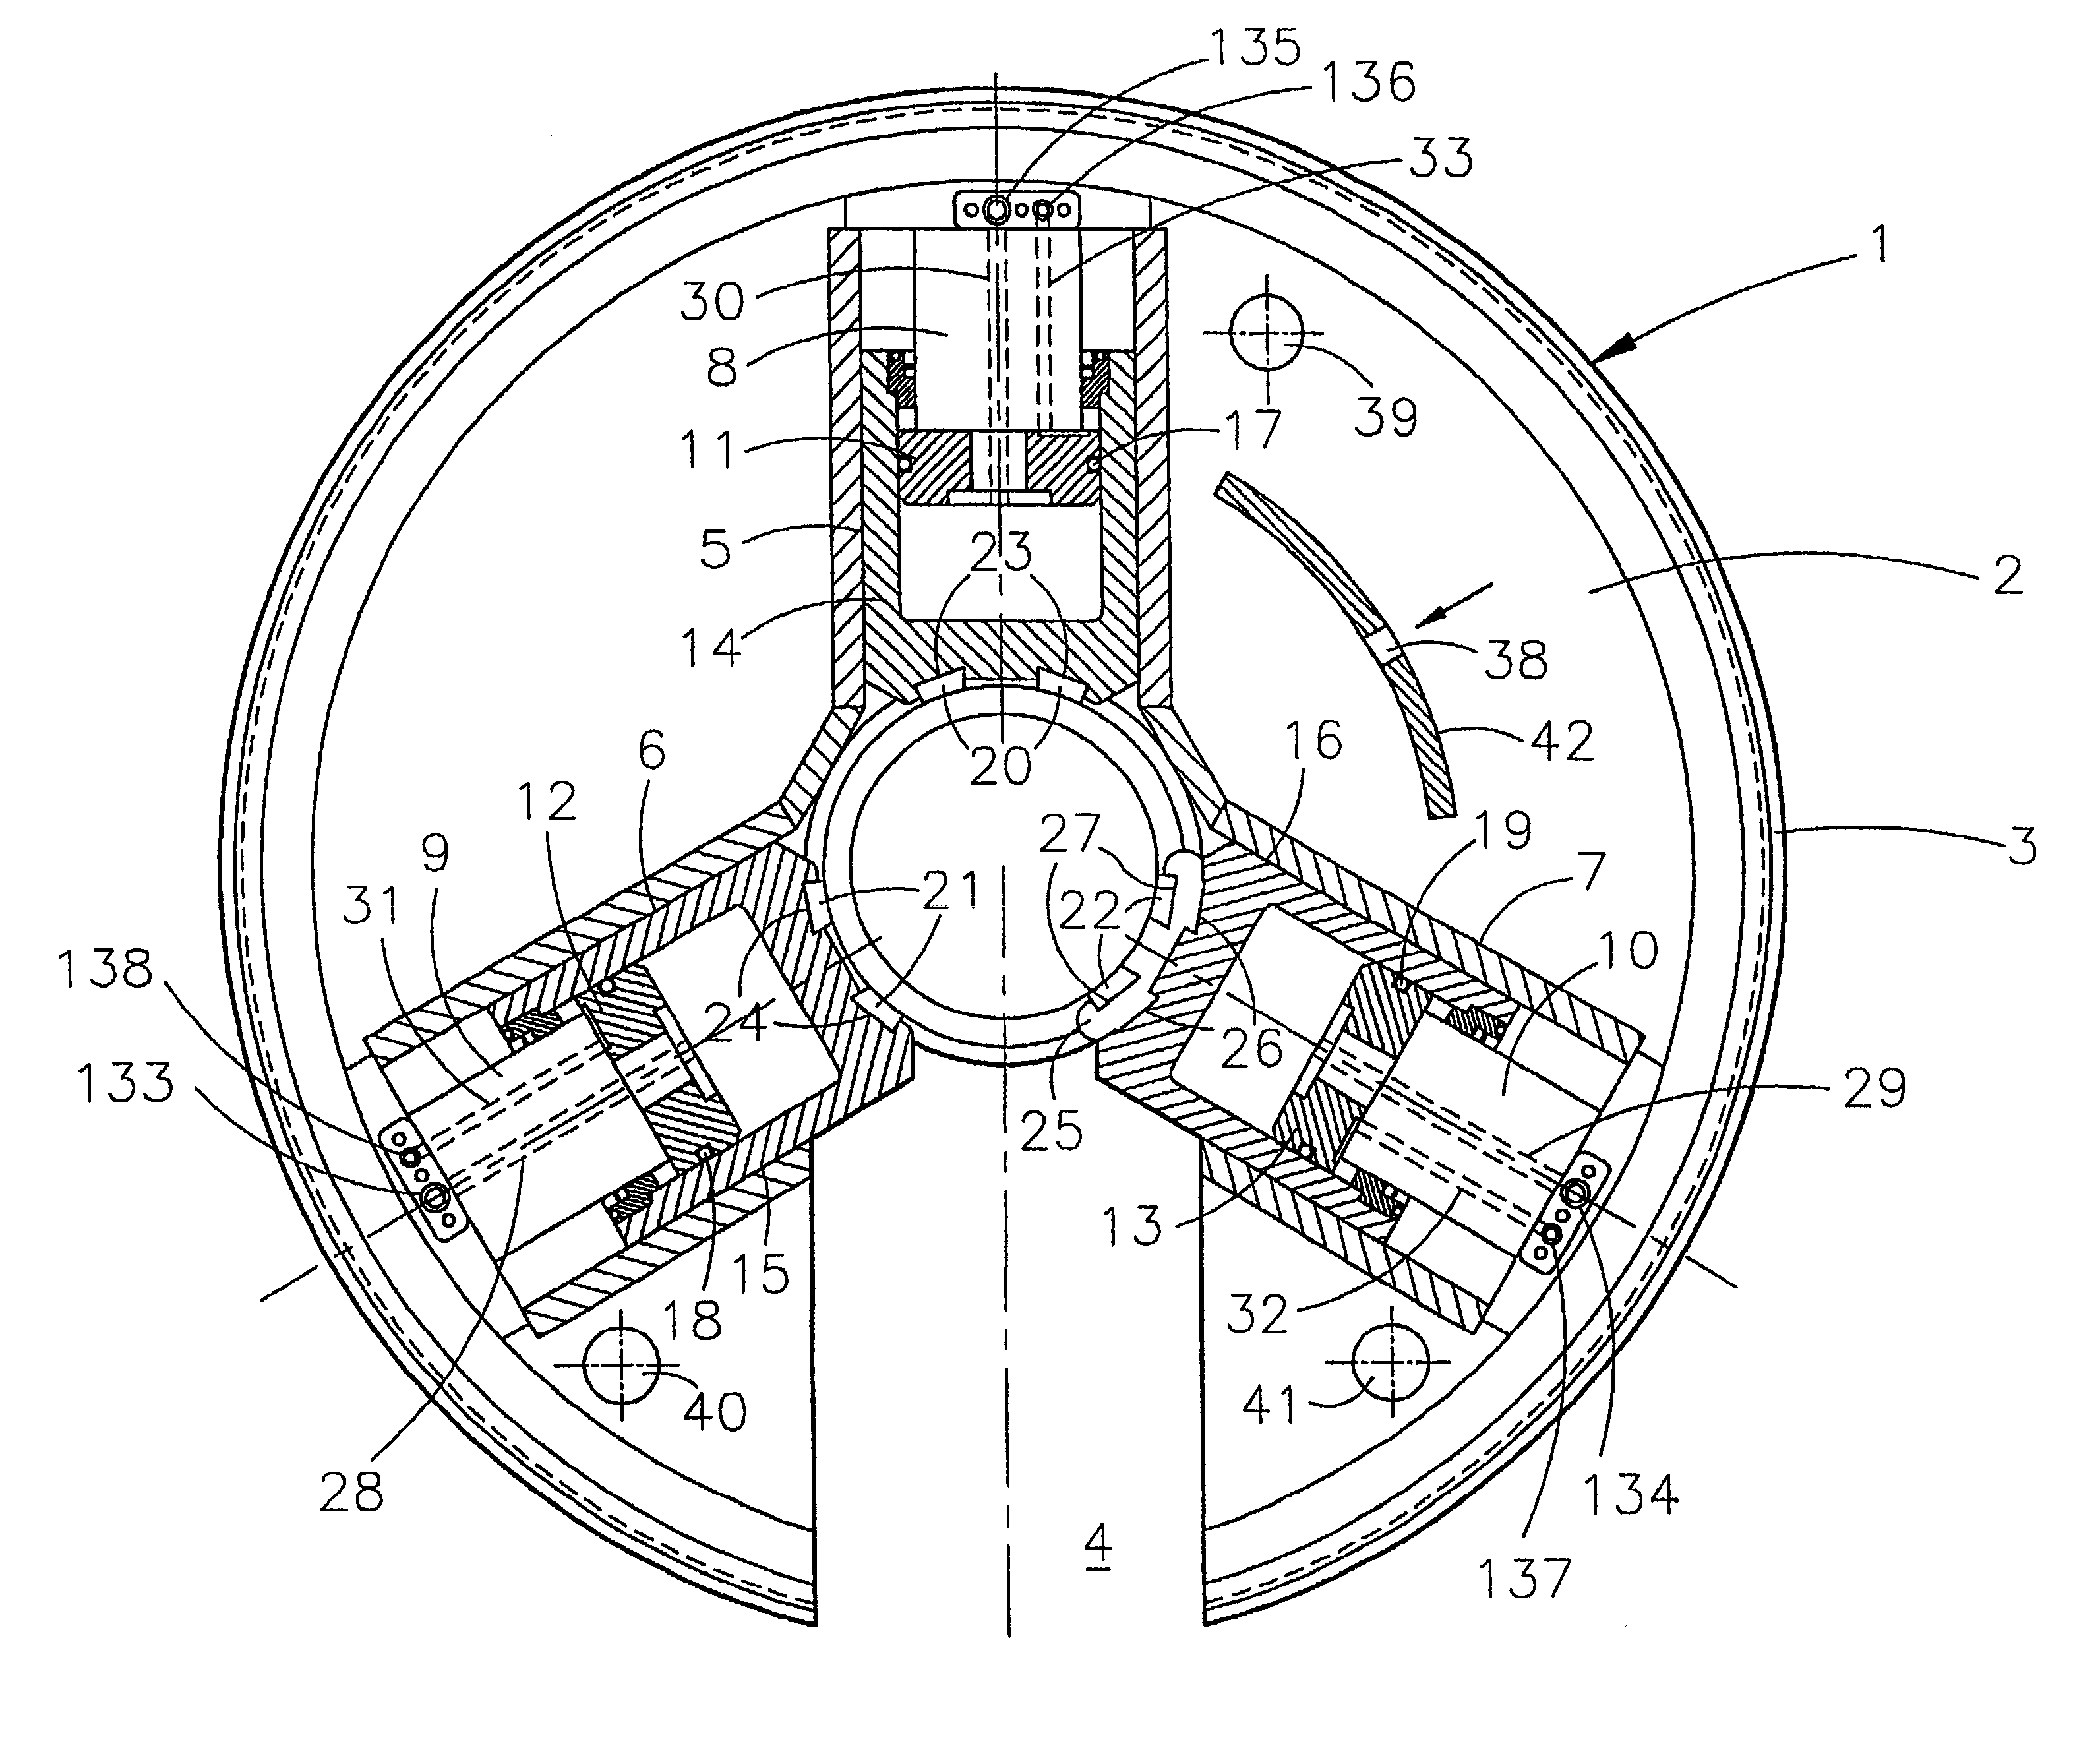 patent us6684737 - power tong